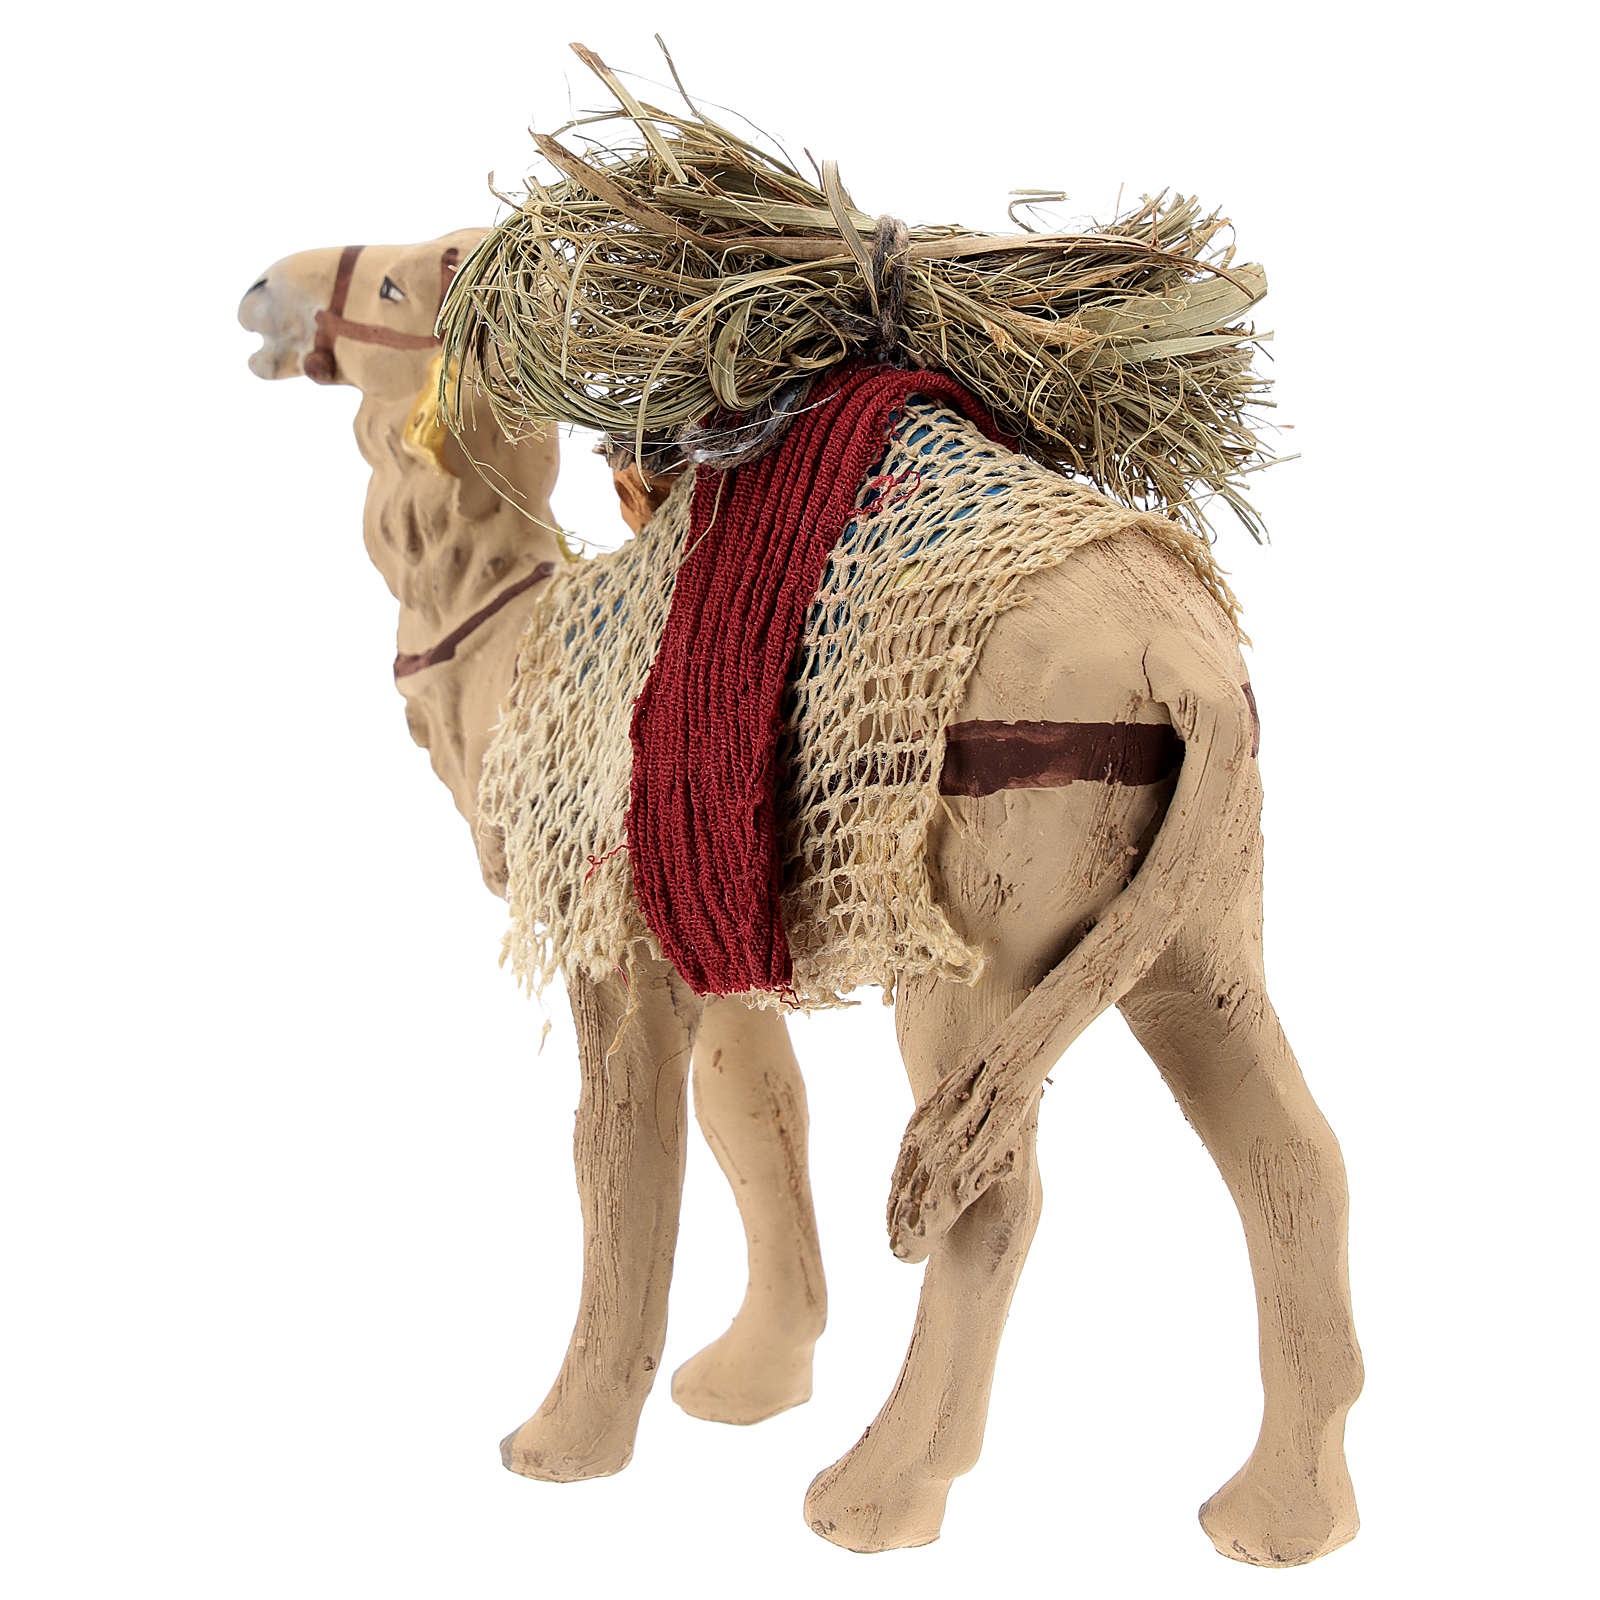 Nativity scene accessory, Camel standing up with harness 10 cm 4